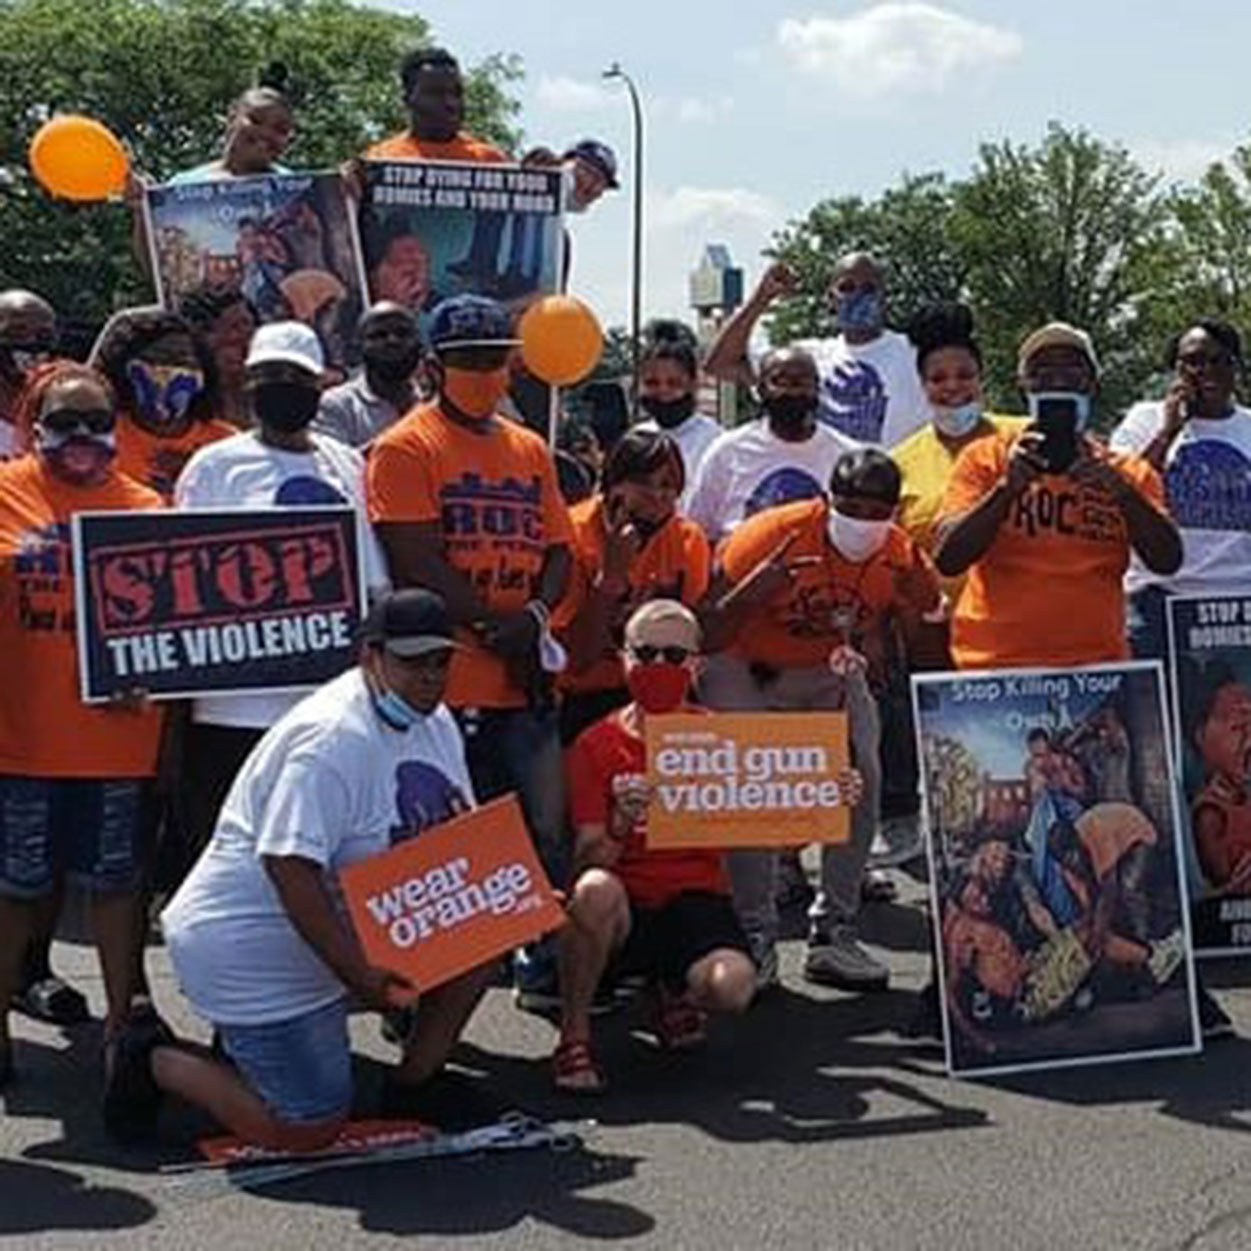 Rise Up Rochester, Inc. at a Wear Orange event